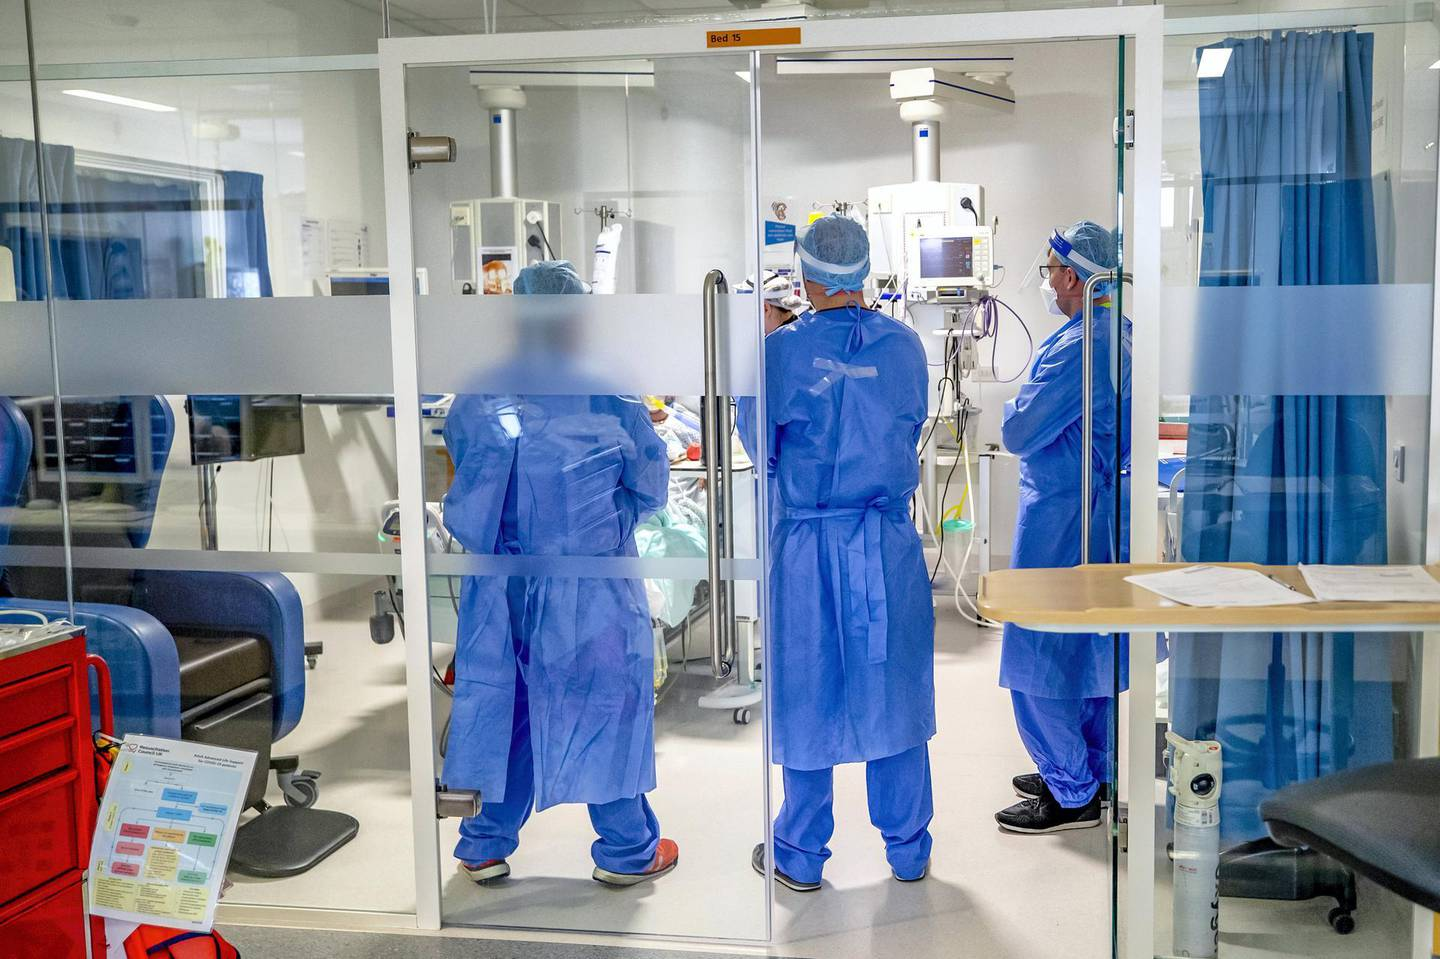 Health workers wearing full personal protective equipment (PPE) tend to a patient on the intensive care unit (ICU) at Whiston Hospital in Merseyside as they continue deal with the increasing number of coronavirus patients. (Photo by Peter Byrne/PA Images via Getty Images)